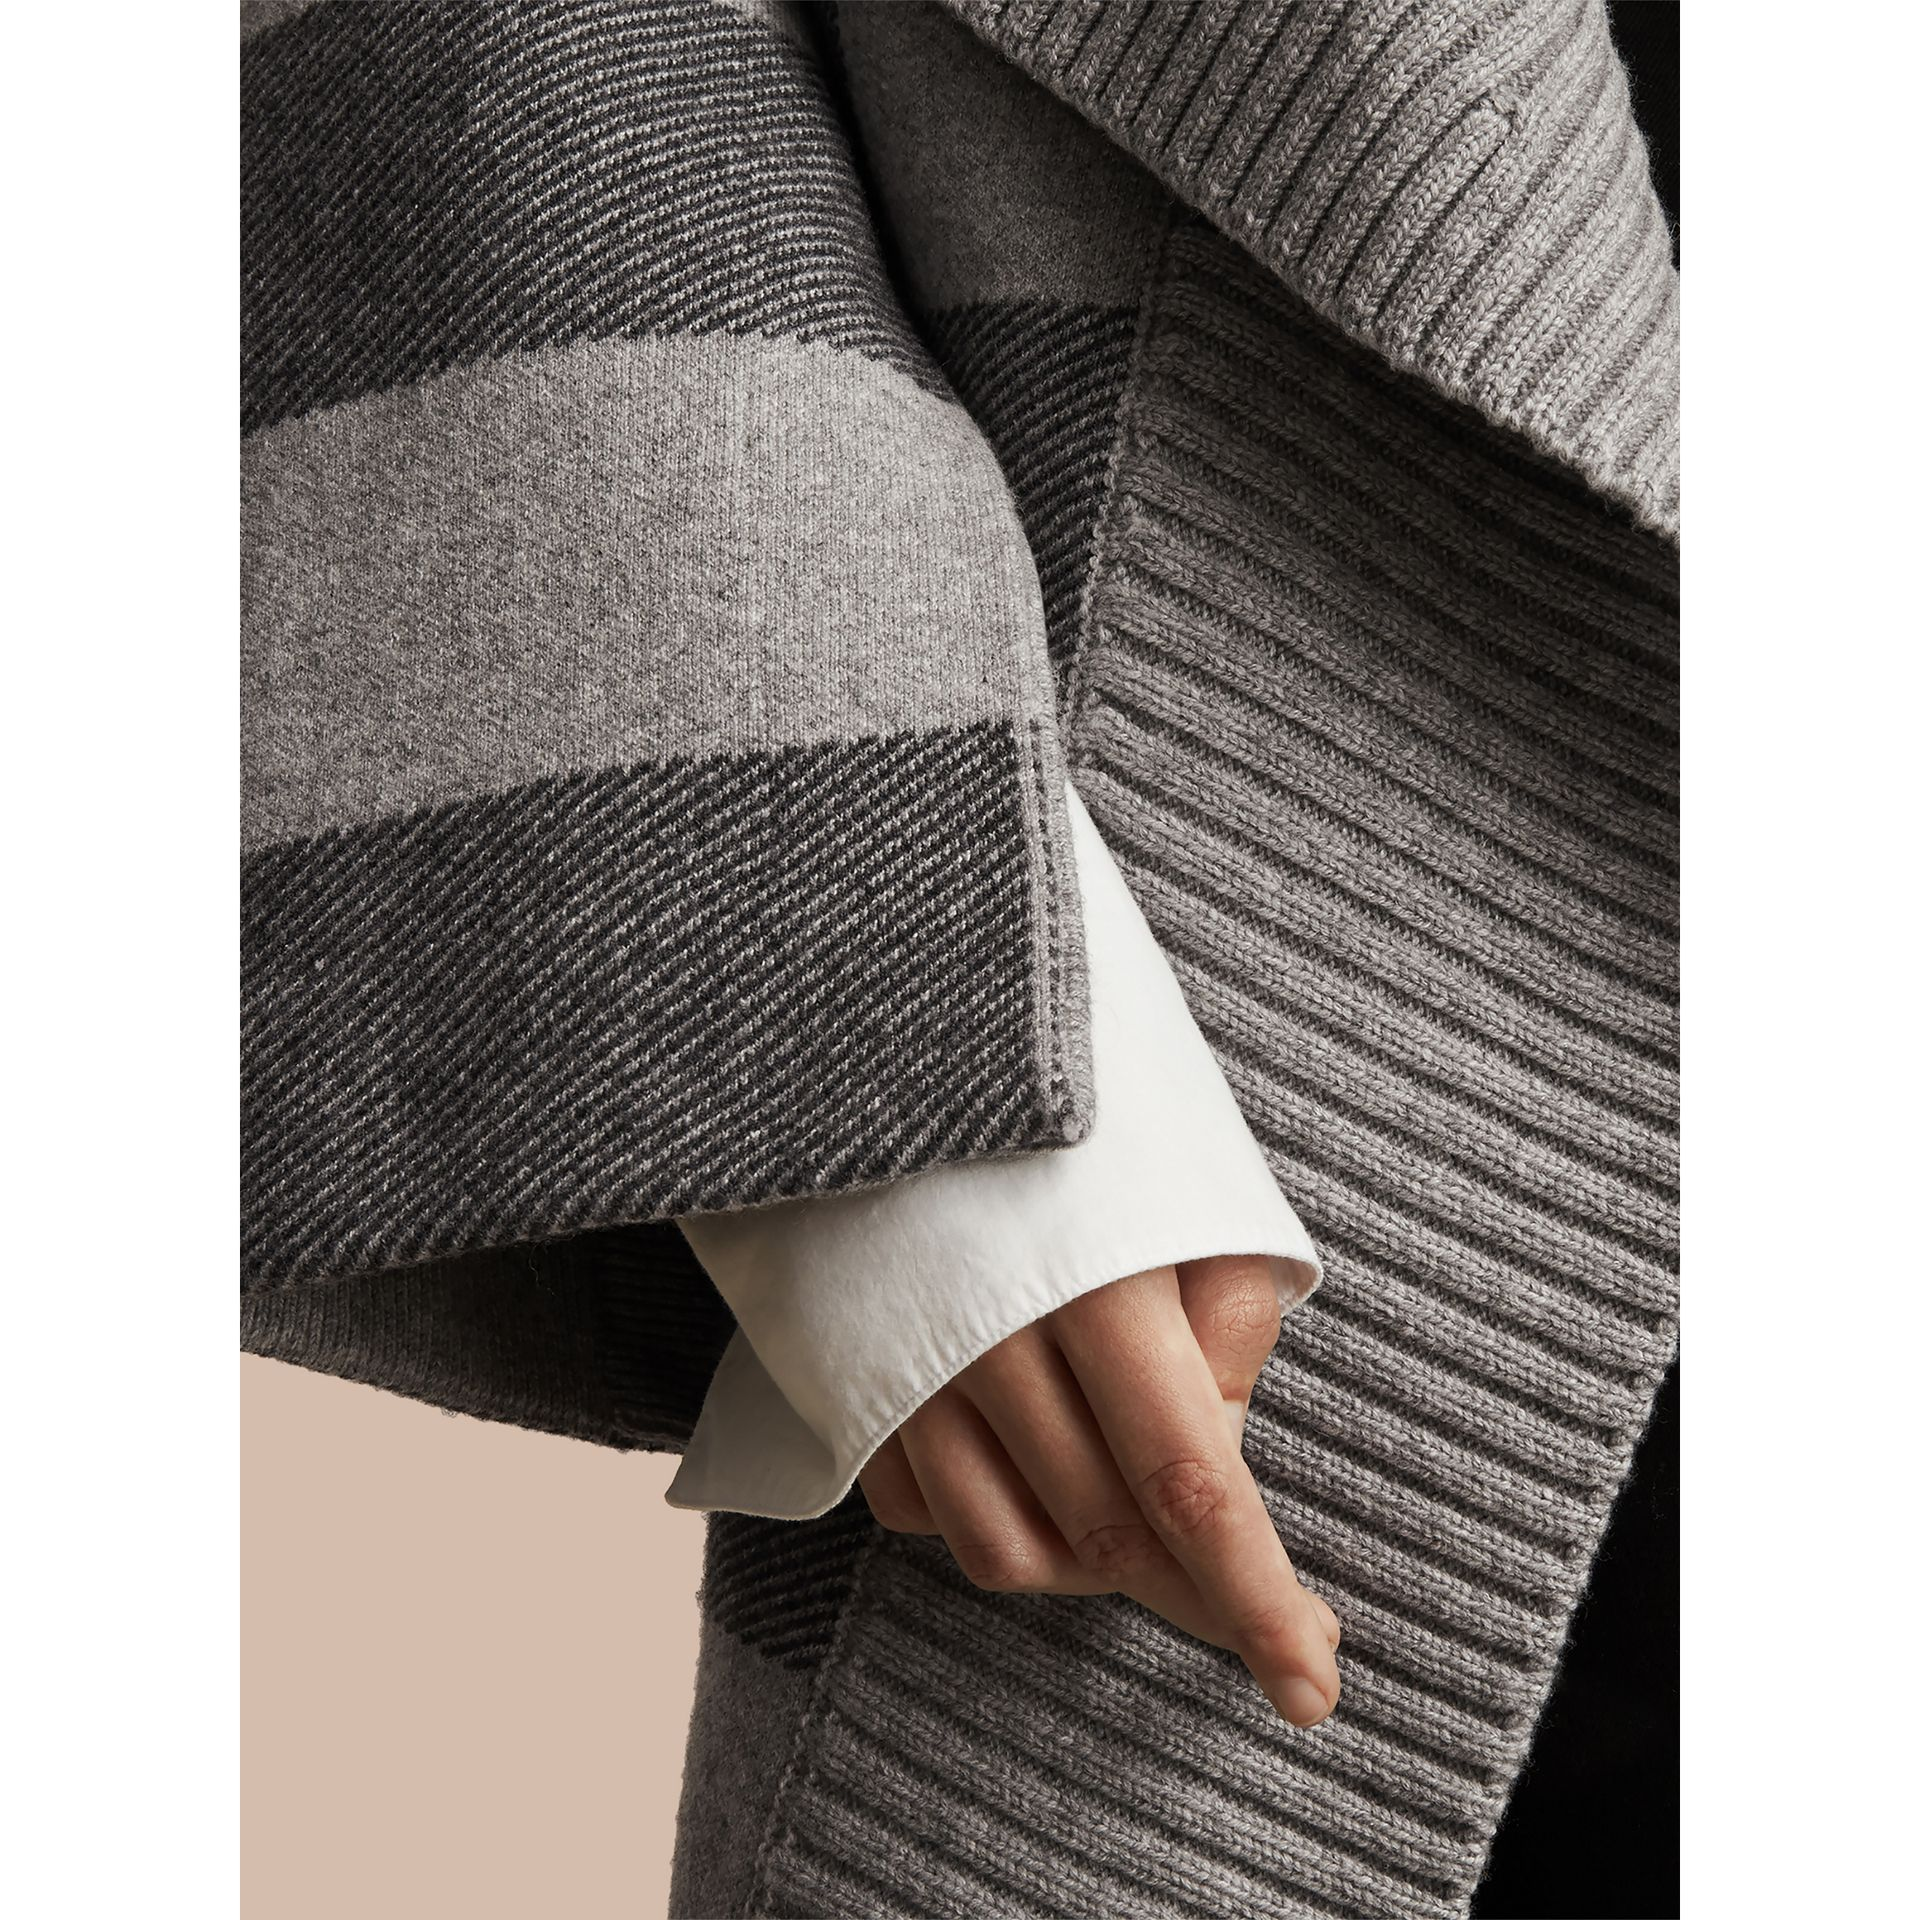 Check Wool Cashmere Blend Cardigan Coat in Pale Grey Melange - Women | Burberry Singapore - gallery image 2